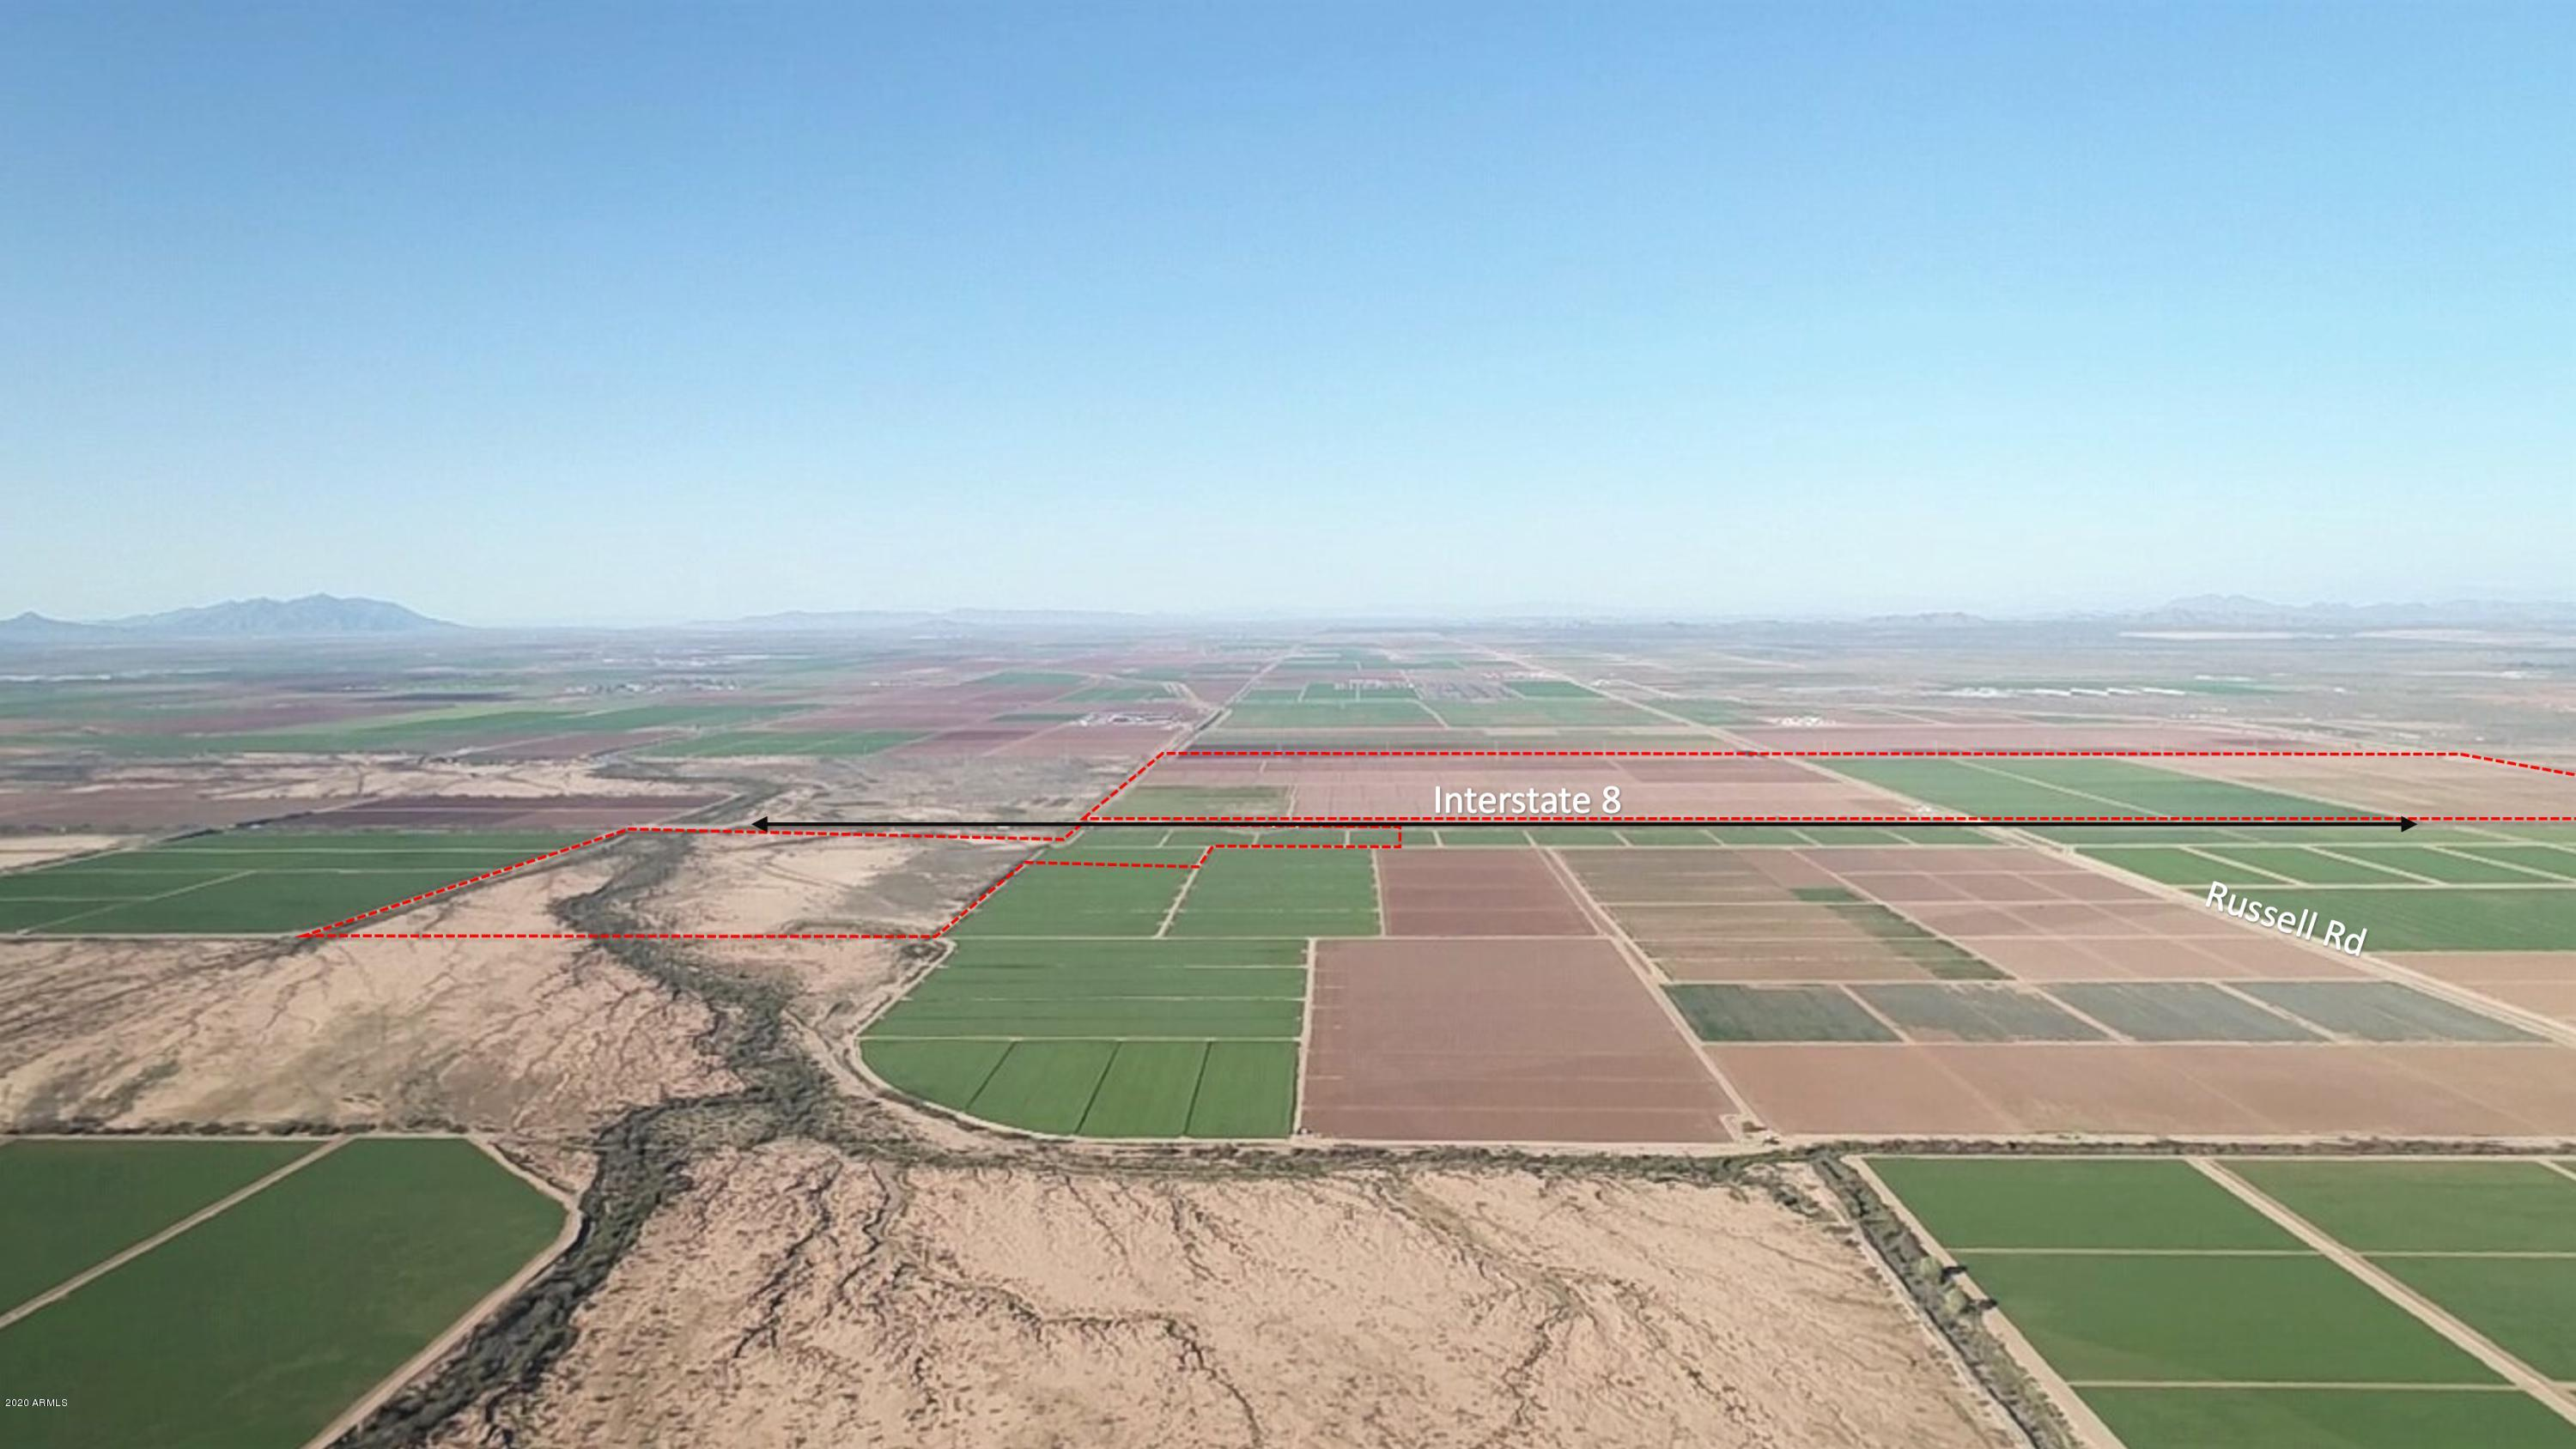 0 E Russell Road # 0, Stanfield, Arizona 85172, ,Land,For Sale,0 E Russell Road # 0,6067099